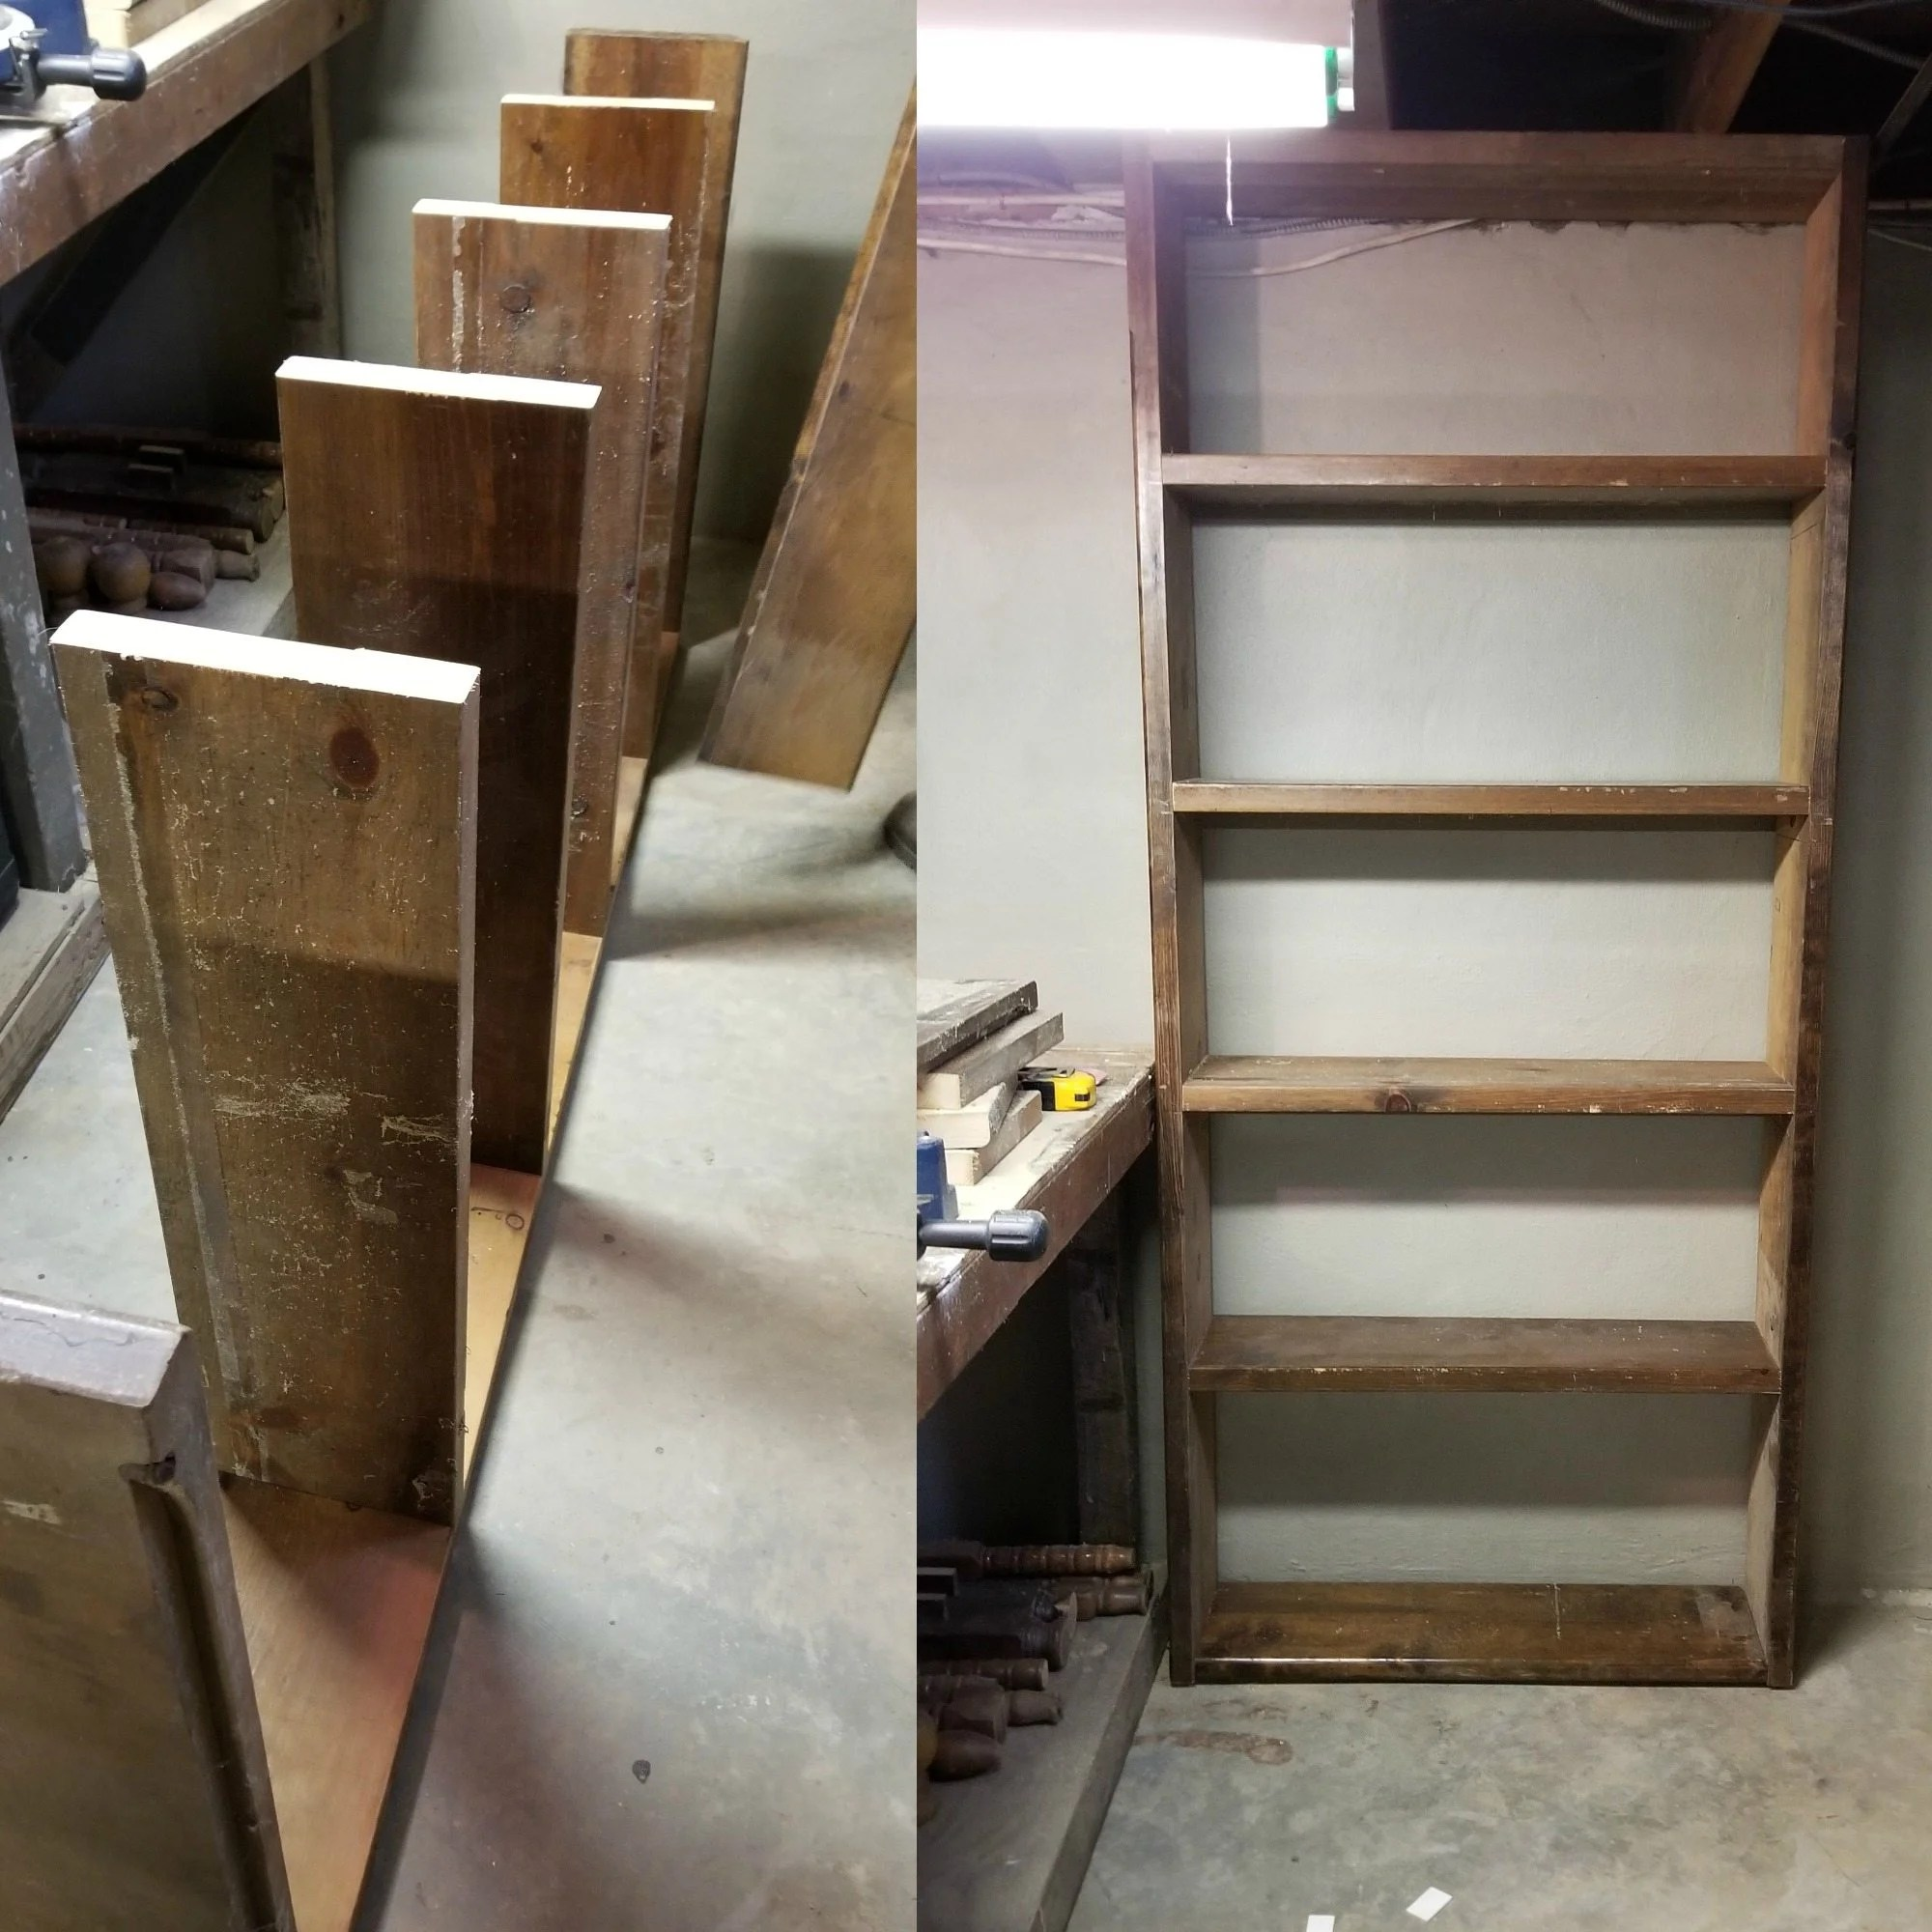 Shelving Shop Easy Build Storage Shelf For The Basement Shop My Repurposed Life